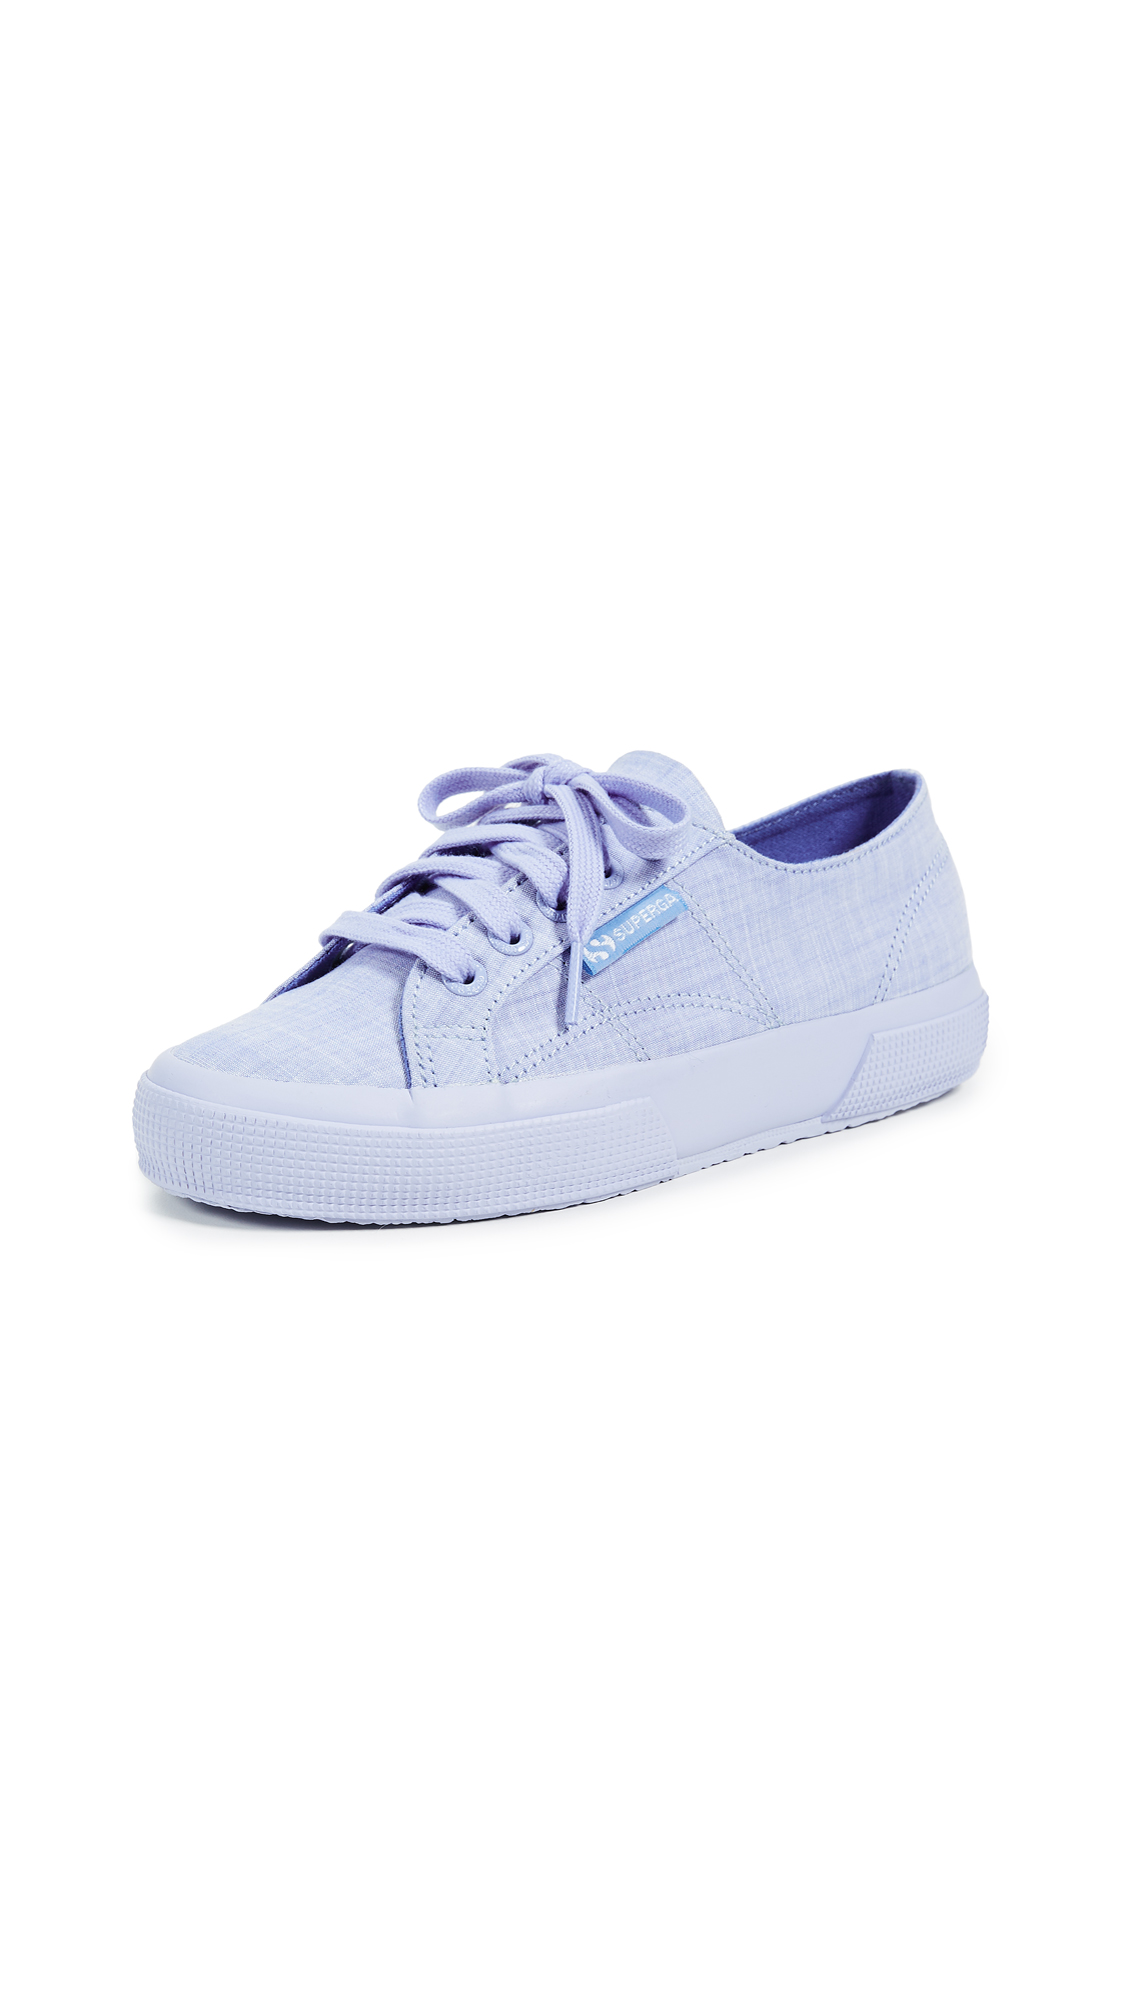 Superga 2750 Cotton Melangu Sneakers In Blue